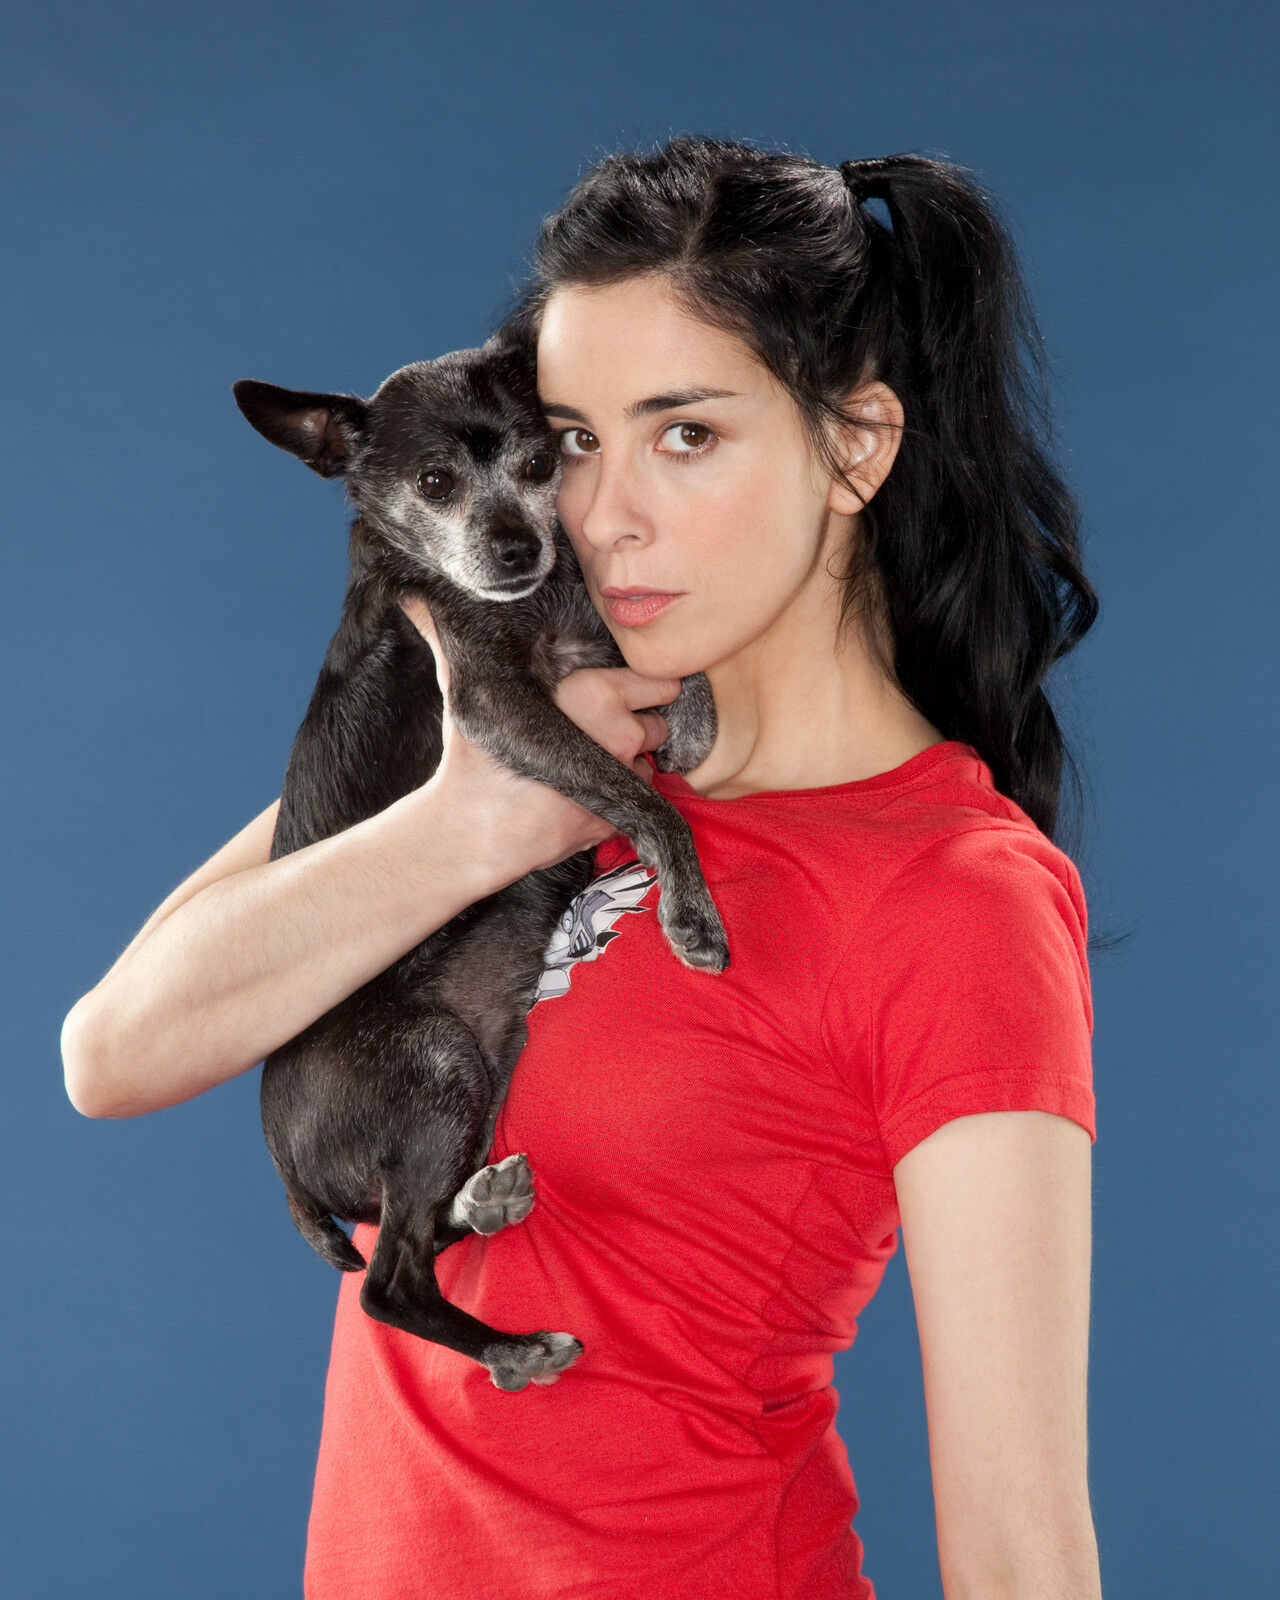 sarah silverman dog essay Instagramcom/sarahkatesilverman it's no laughing matter for comedian sarah silverman that her dog — and best friend of 14 years — passed away this week.